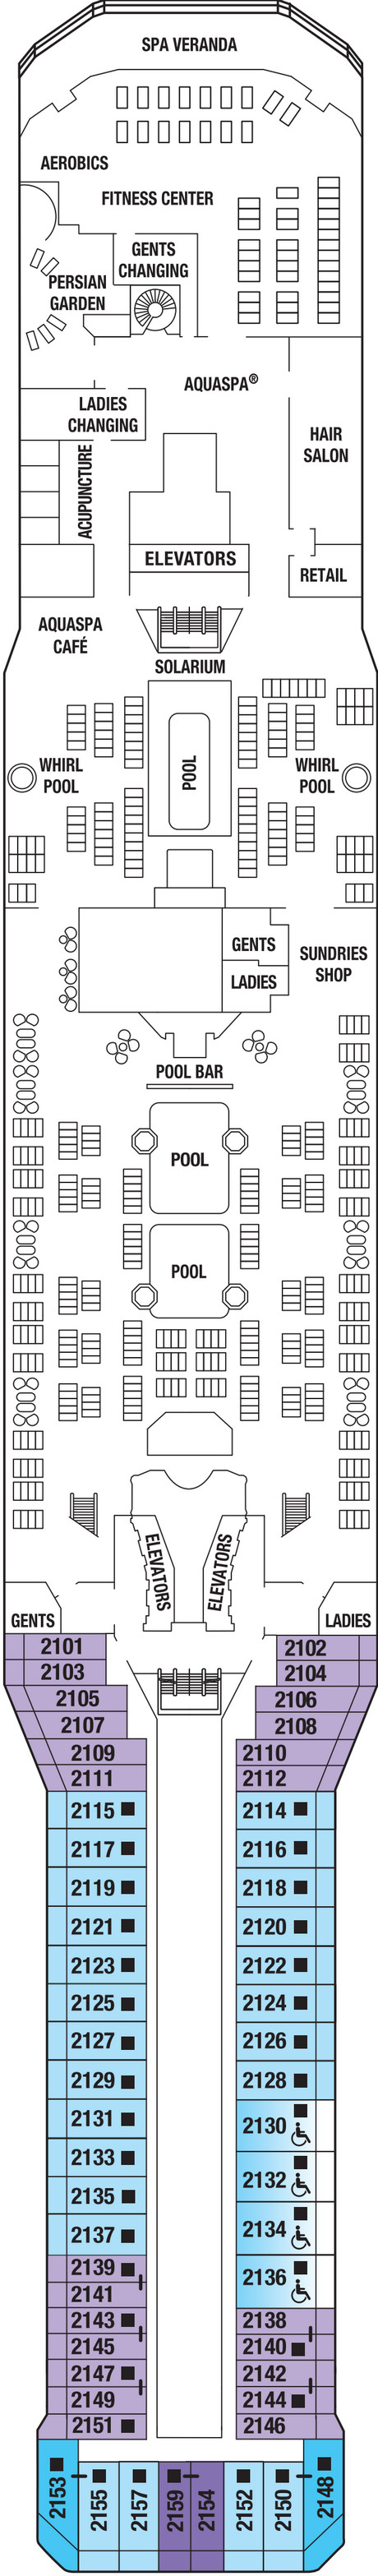 Celebrity Silhouette Resort Deck layout